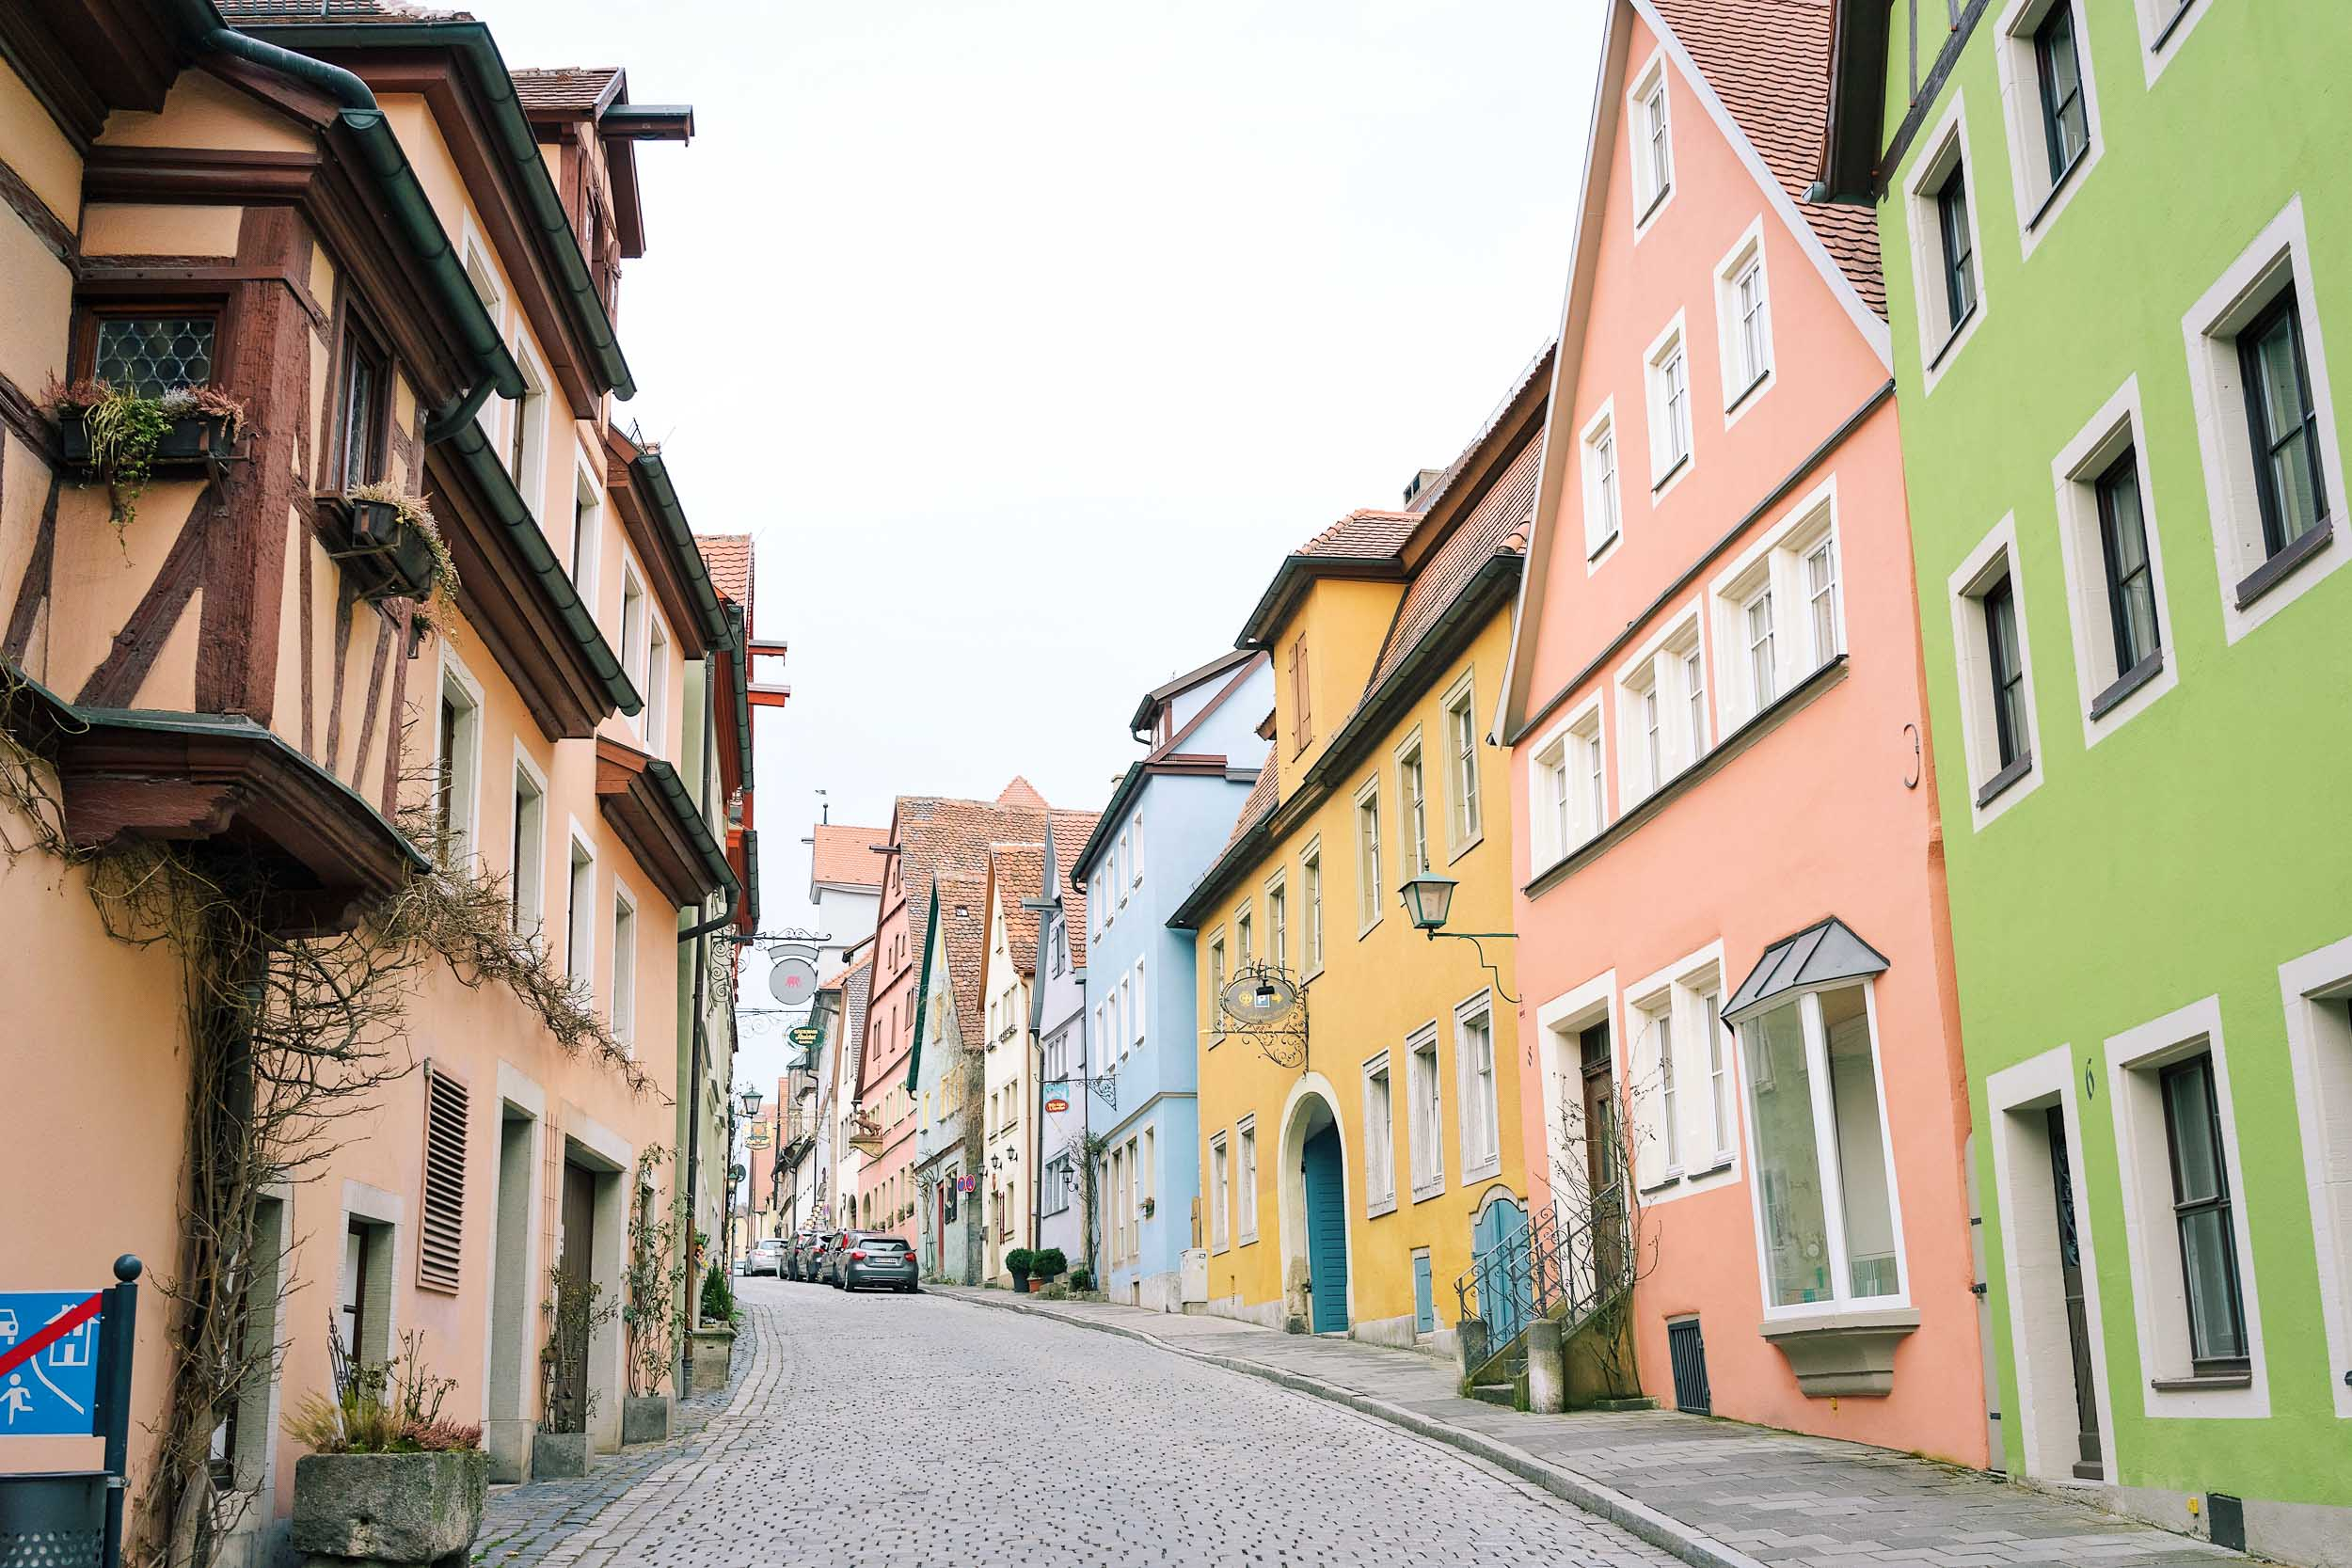 The colorful streets of Rothenburg ob der Tauber